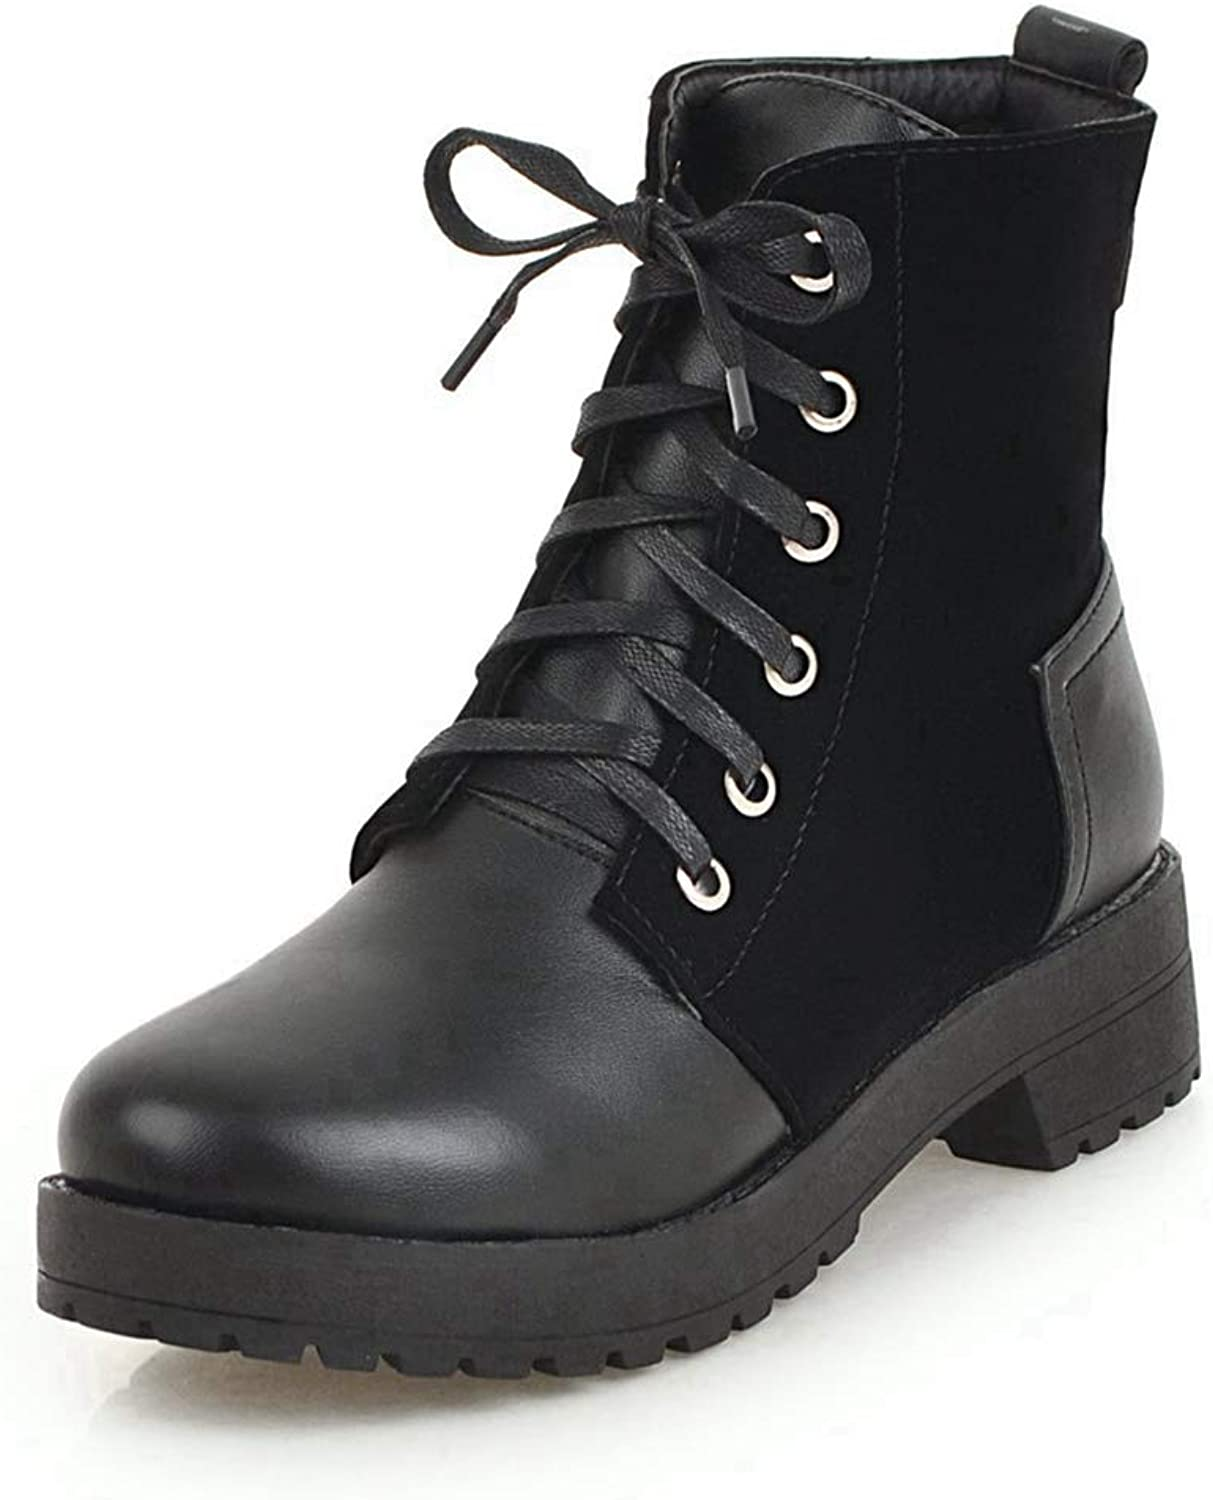 CYBLING Womens Round Toe Lace Up Platform Combat Chunky Heel Martin Boots Zipper Ankle Boots